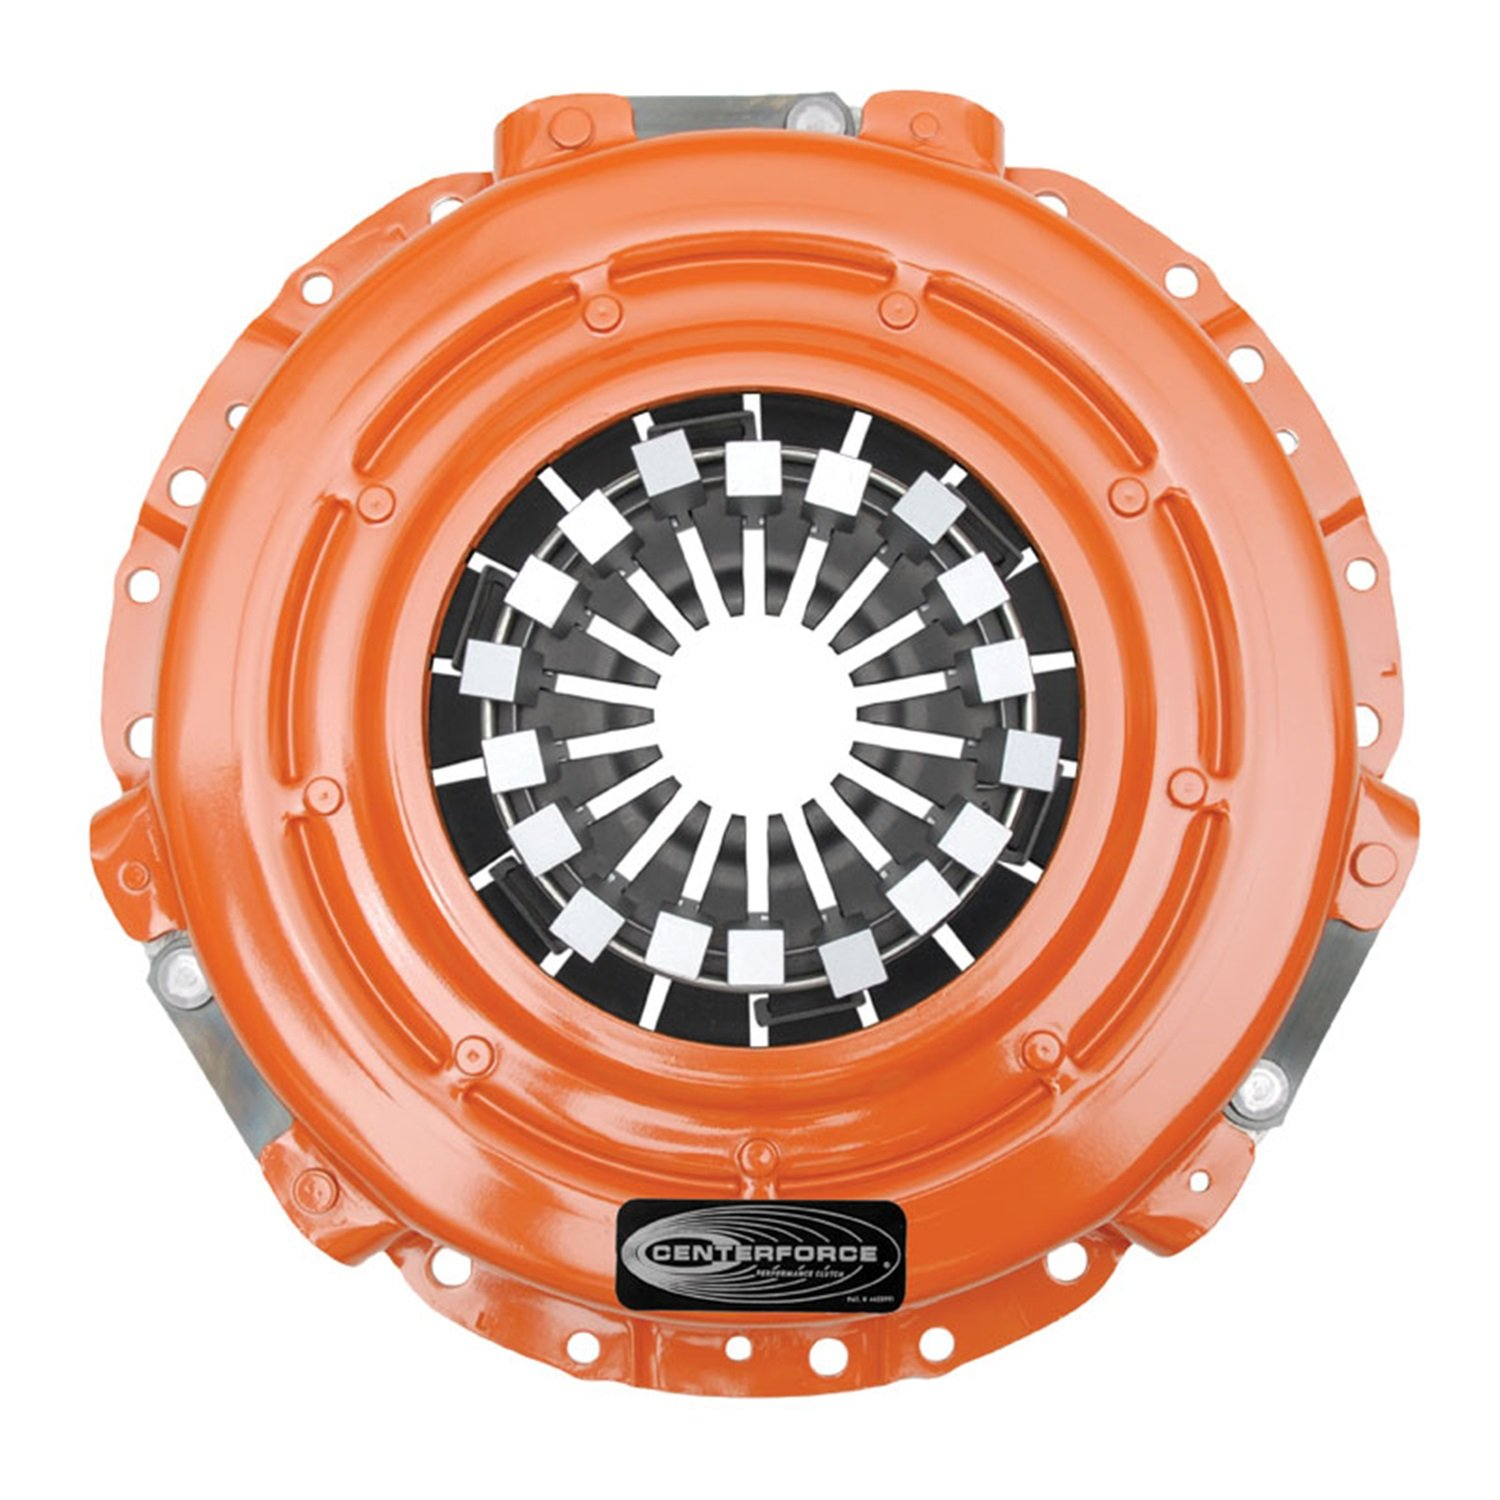 Centerforce CFT360030 Centerforce II Clutch Pressure Plate by Centerforce